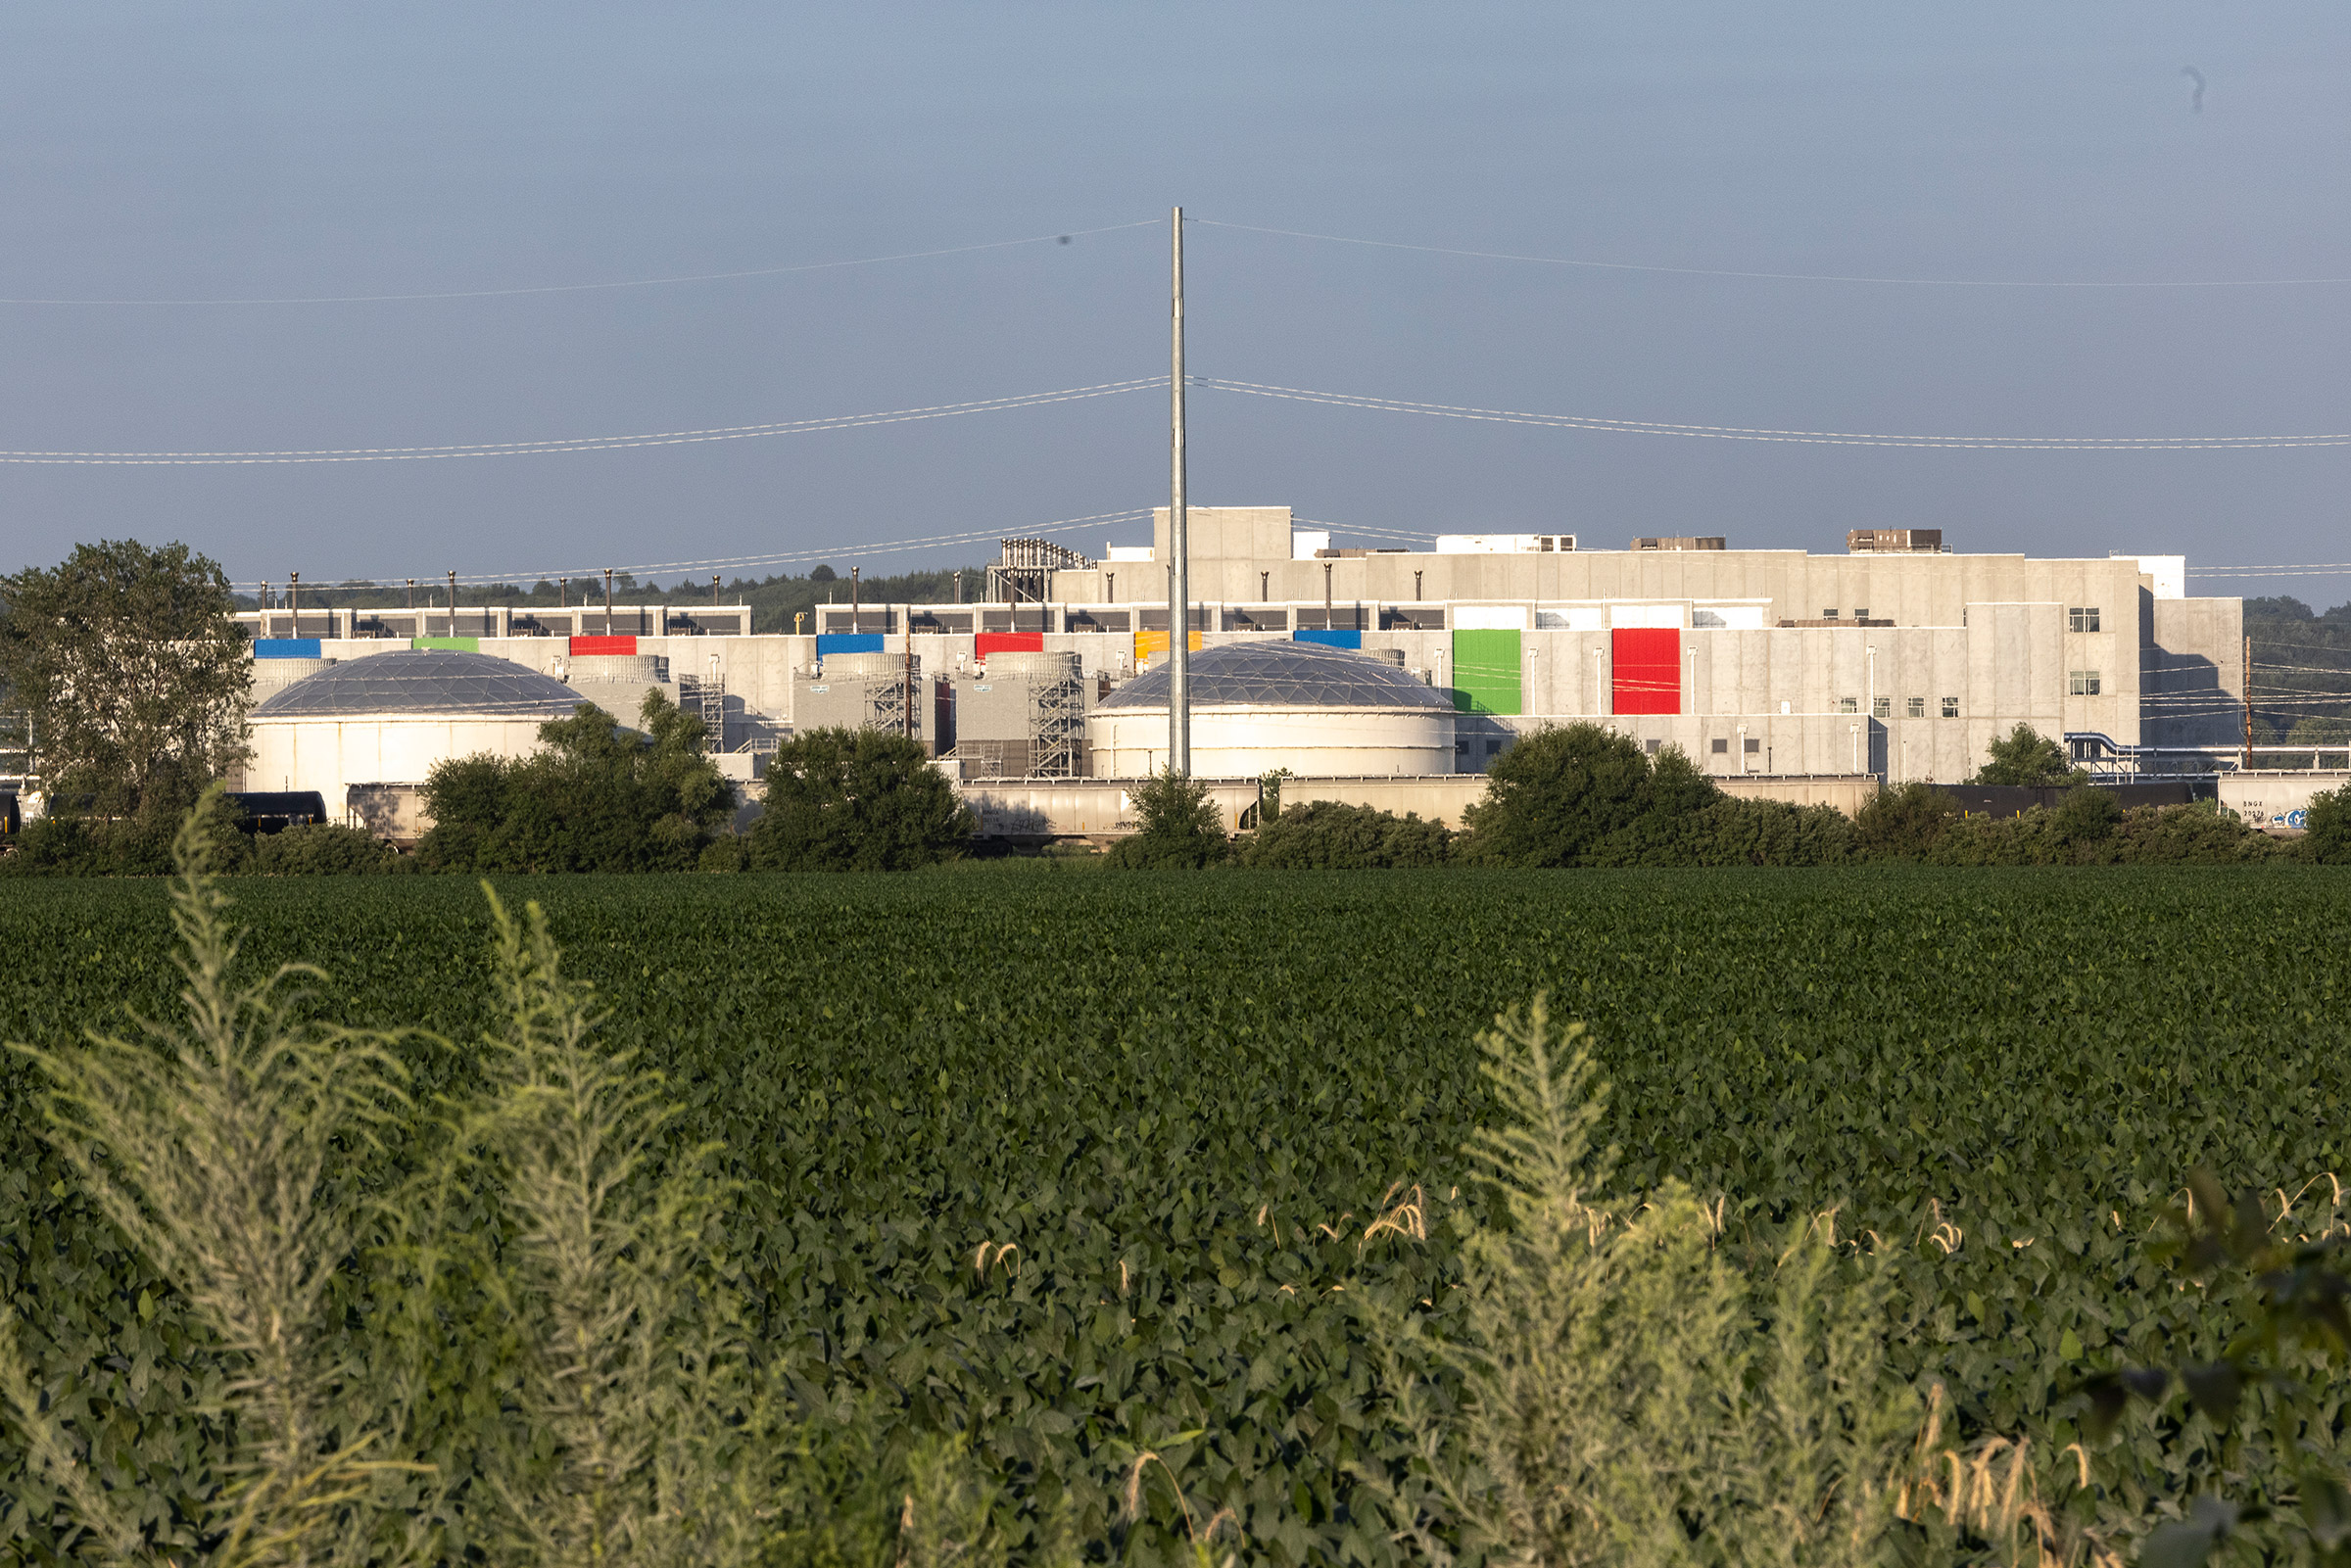 The Google data center in Council Bluffs, Iowa, on July 29, 2021.